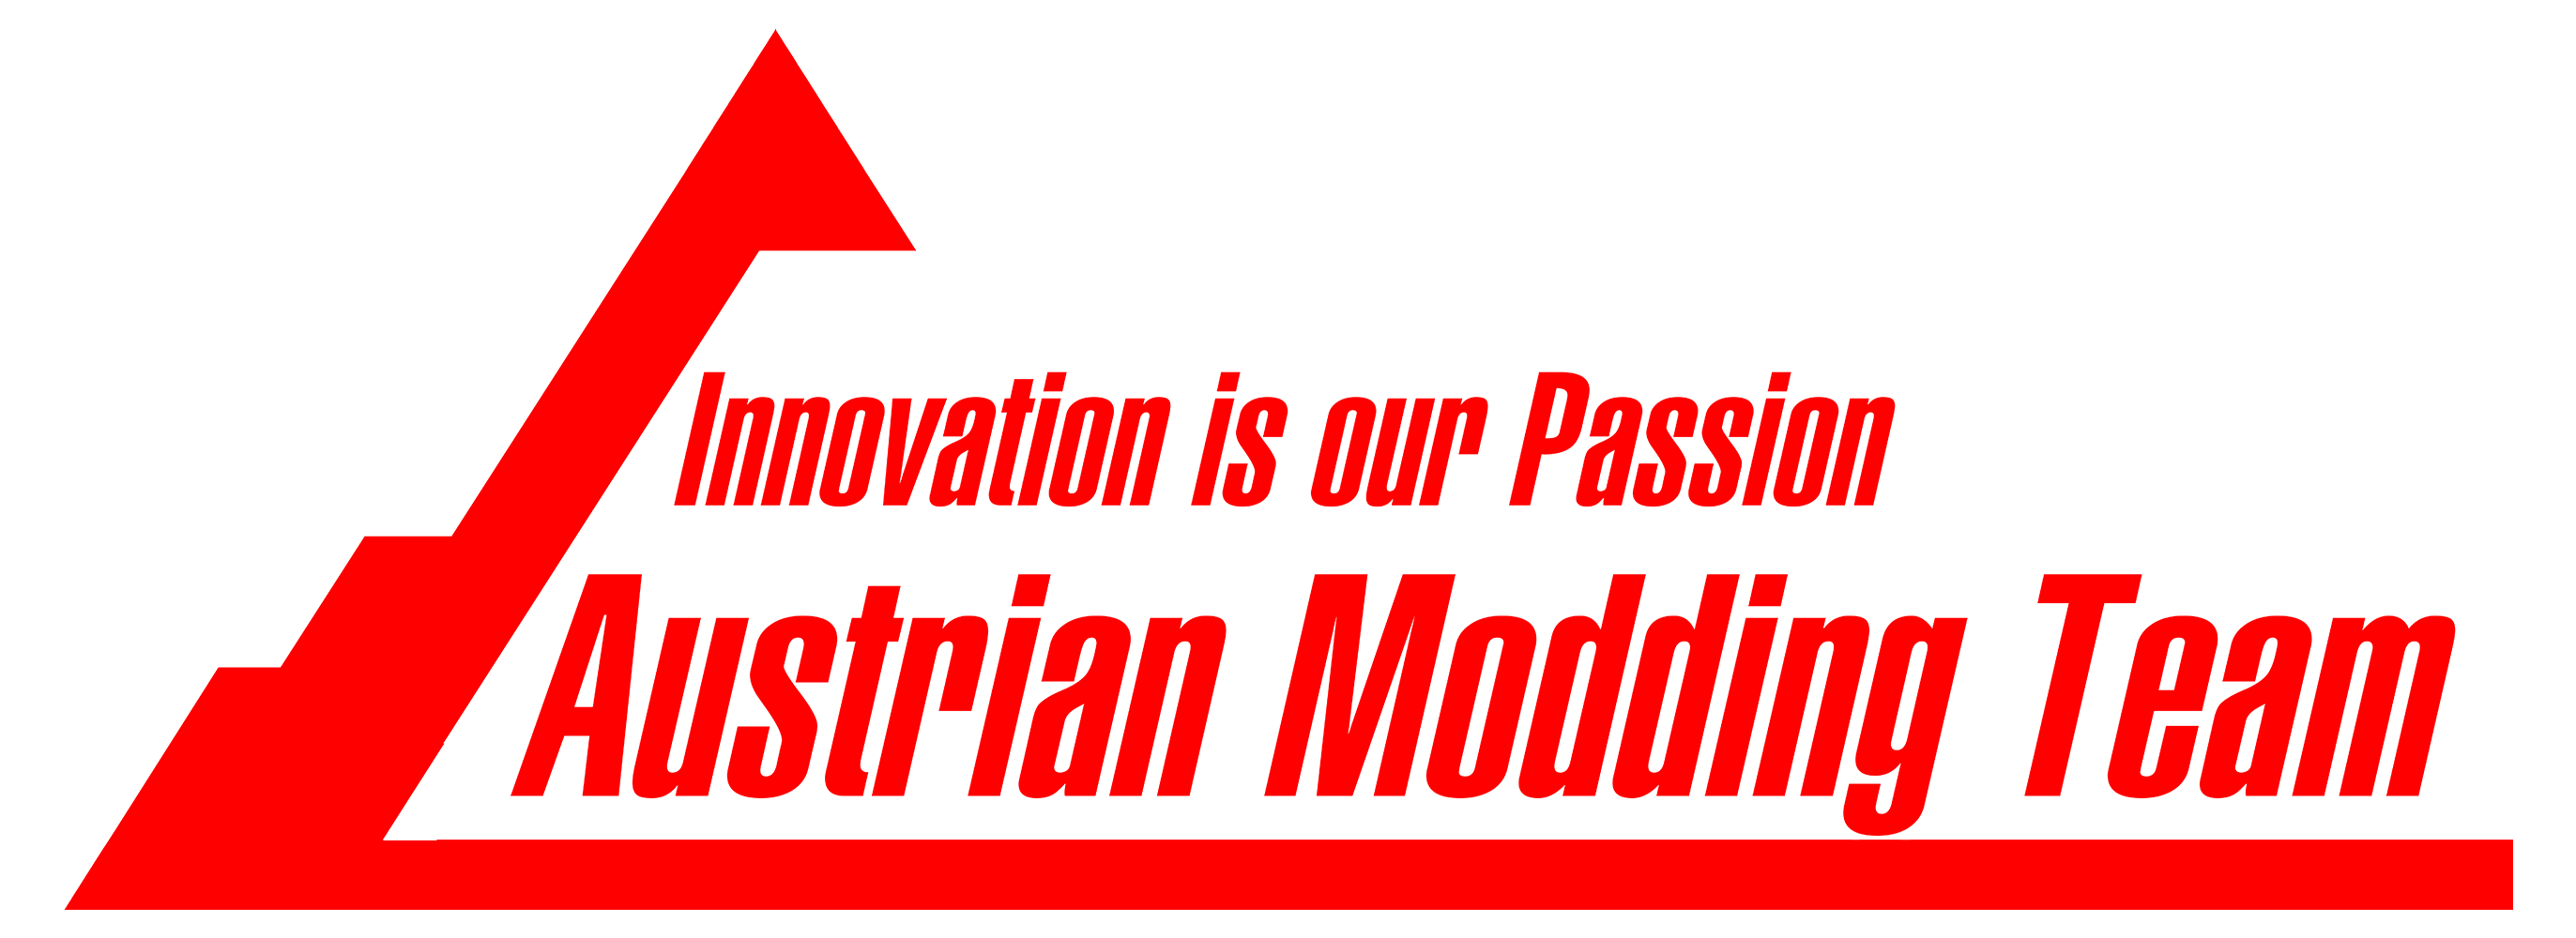 Austrian Modding Team logo